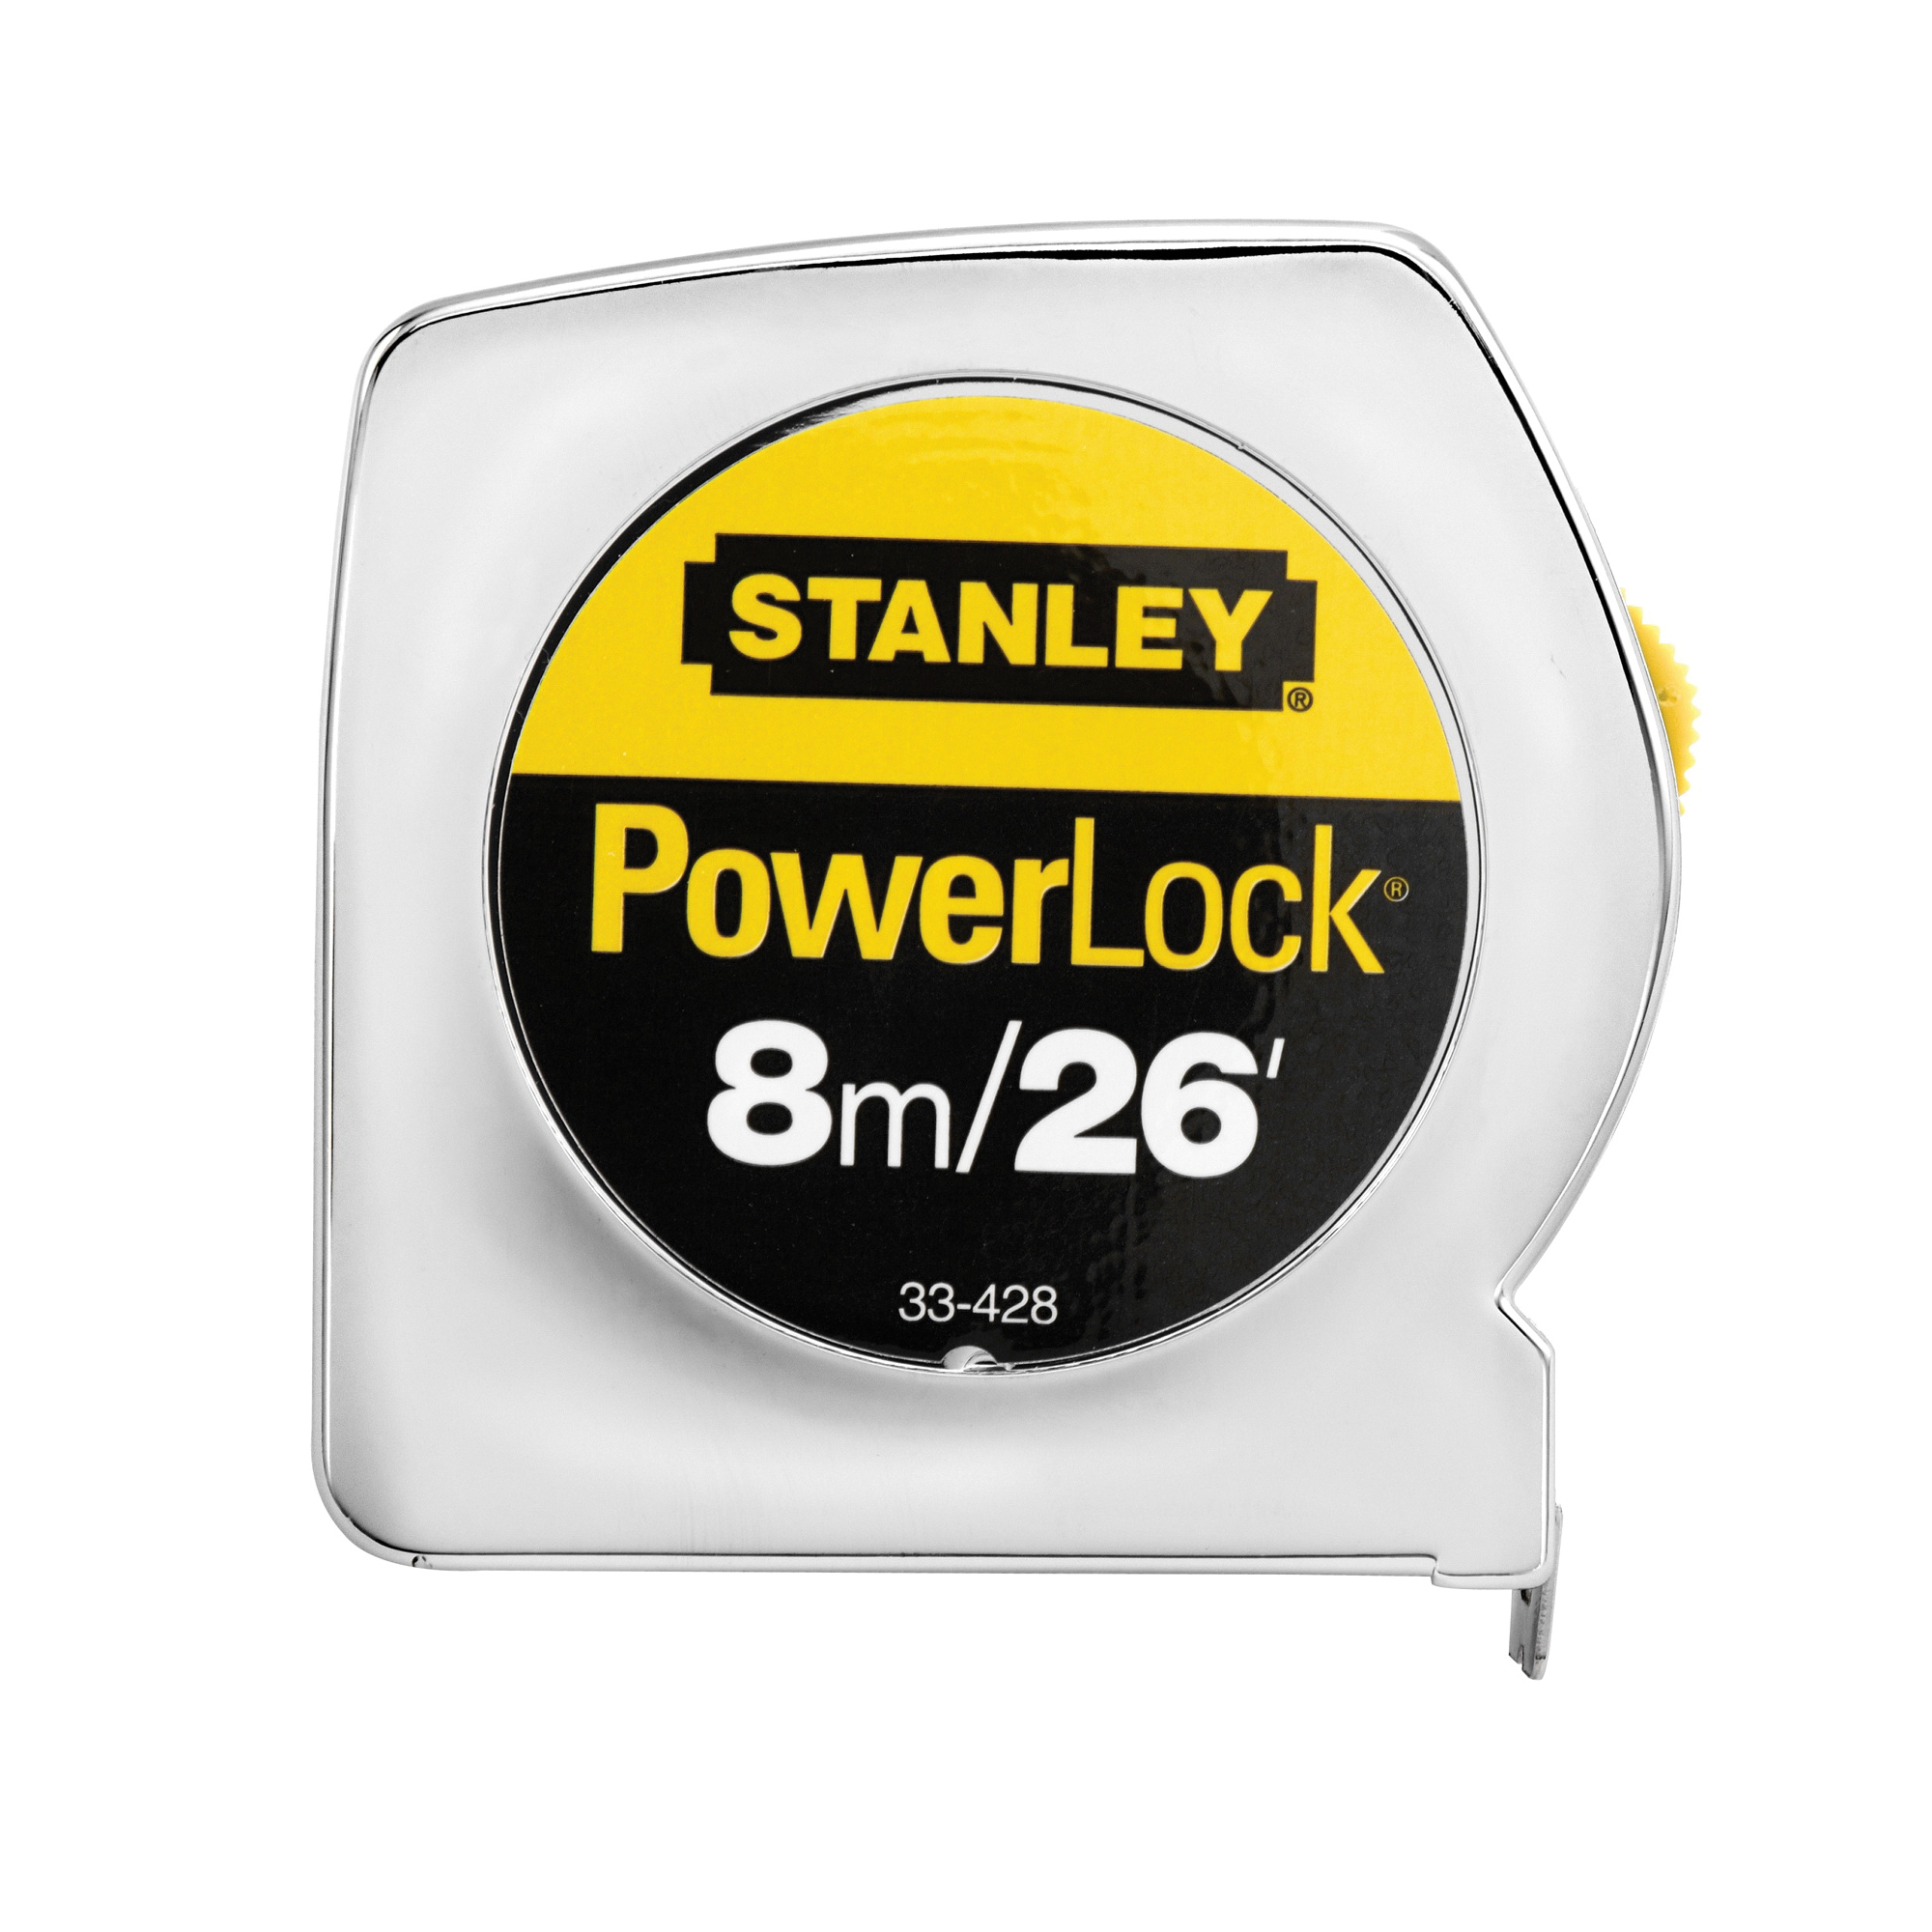 Stanley® PowerLock® 33-428 Classic Tape Rule, 26 ft L x 1 in W Blade, Mylar® Polyester Film, Imperial/Metric, 1/16ths, 1/32nds, 1 mm